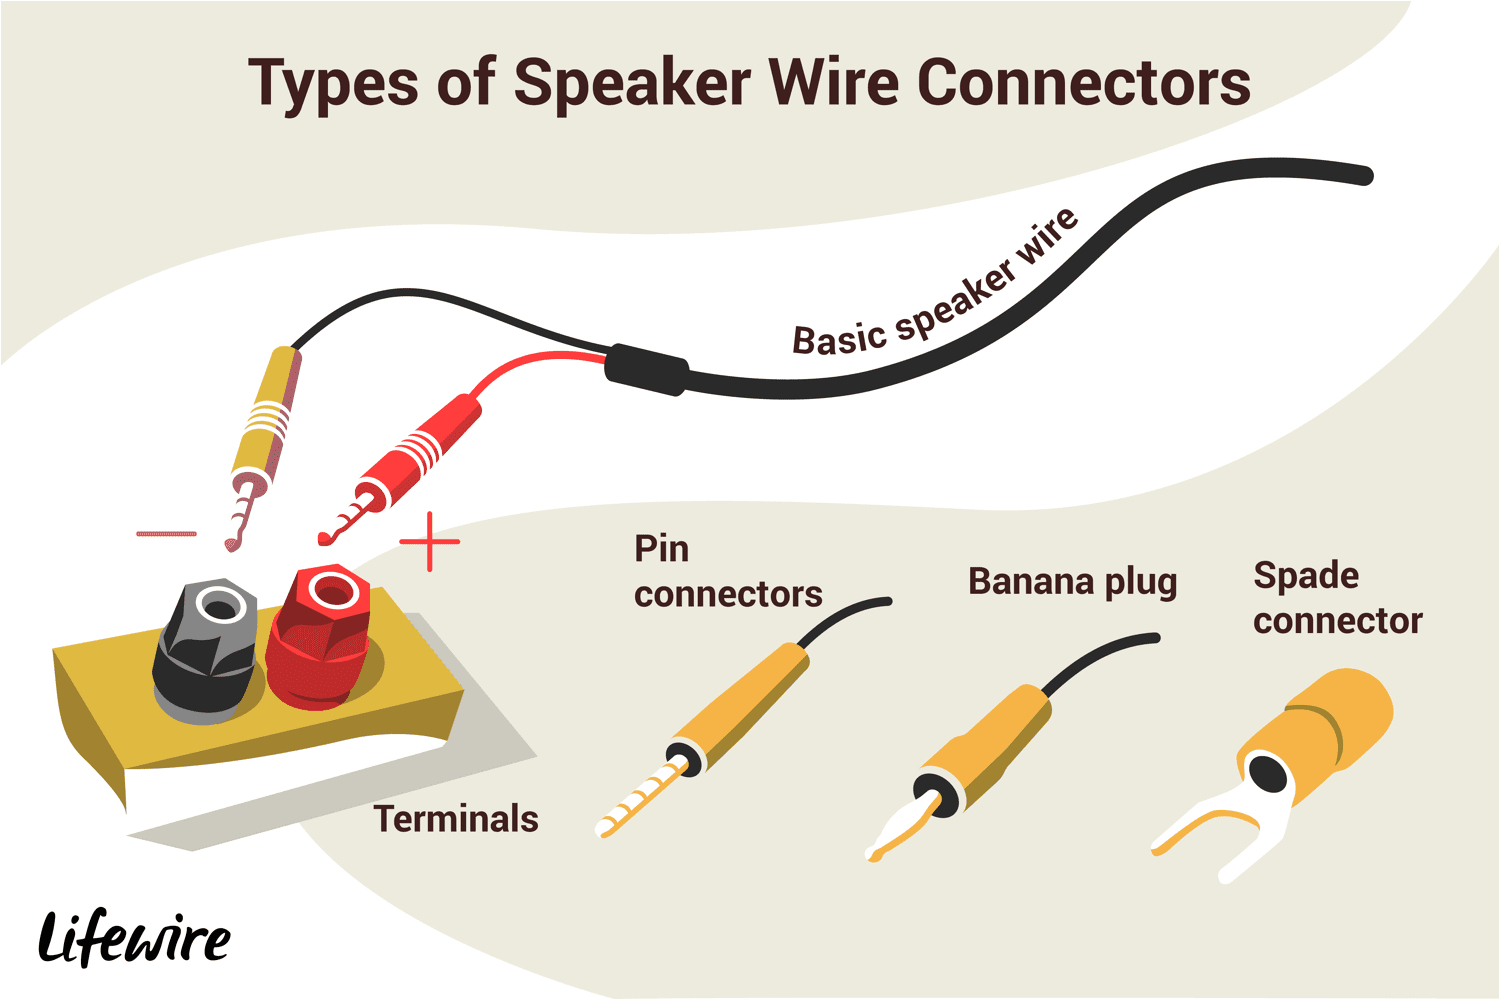 an illustration of the different types of speaker wire connectors